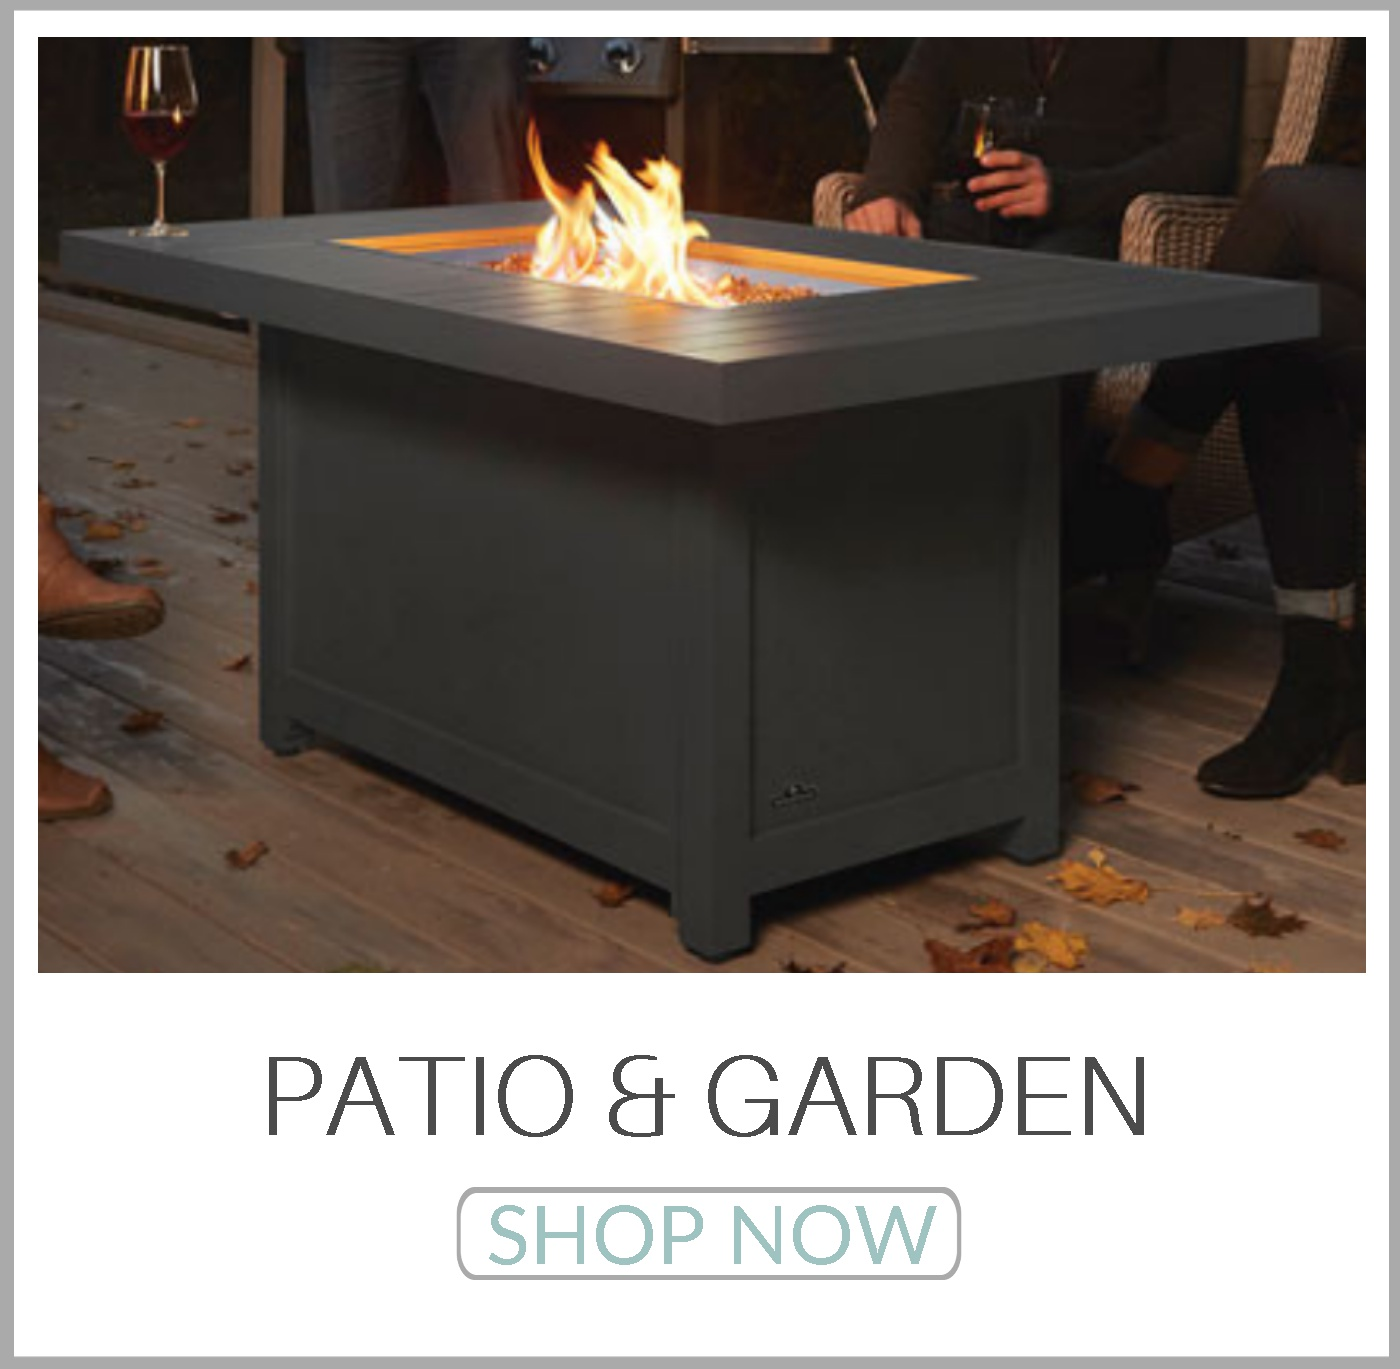 Patio & Garden | Fire Tables | Fire Pits | Outdoor Furniture Collection | Concrete Products | Grills | Patio Heaters | Fountains | Landscape Glass